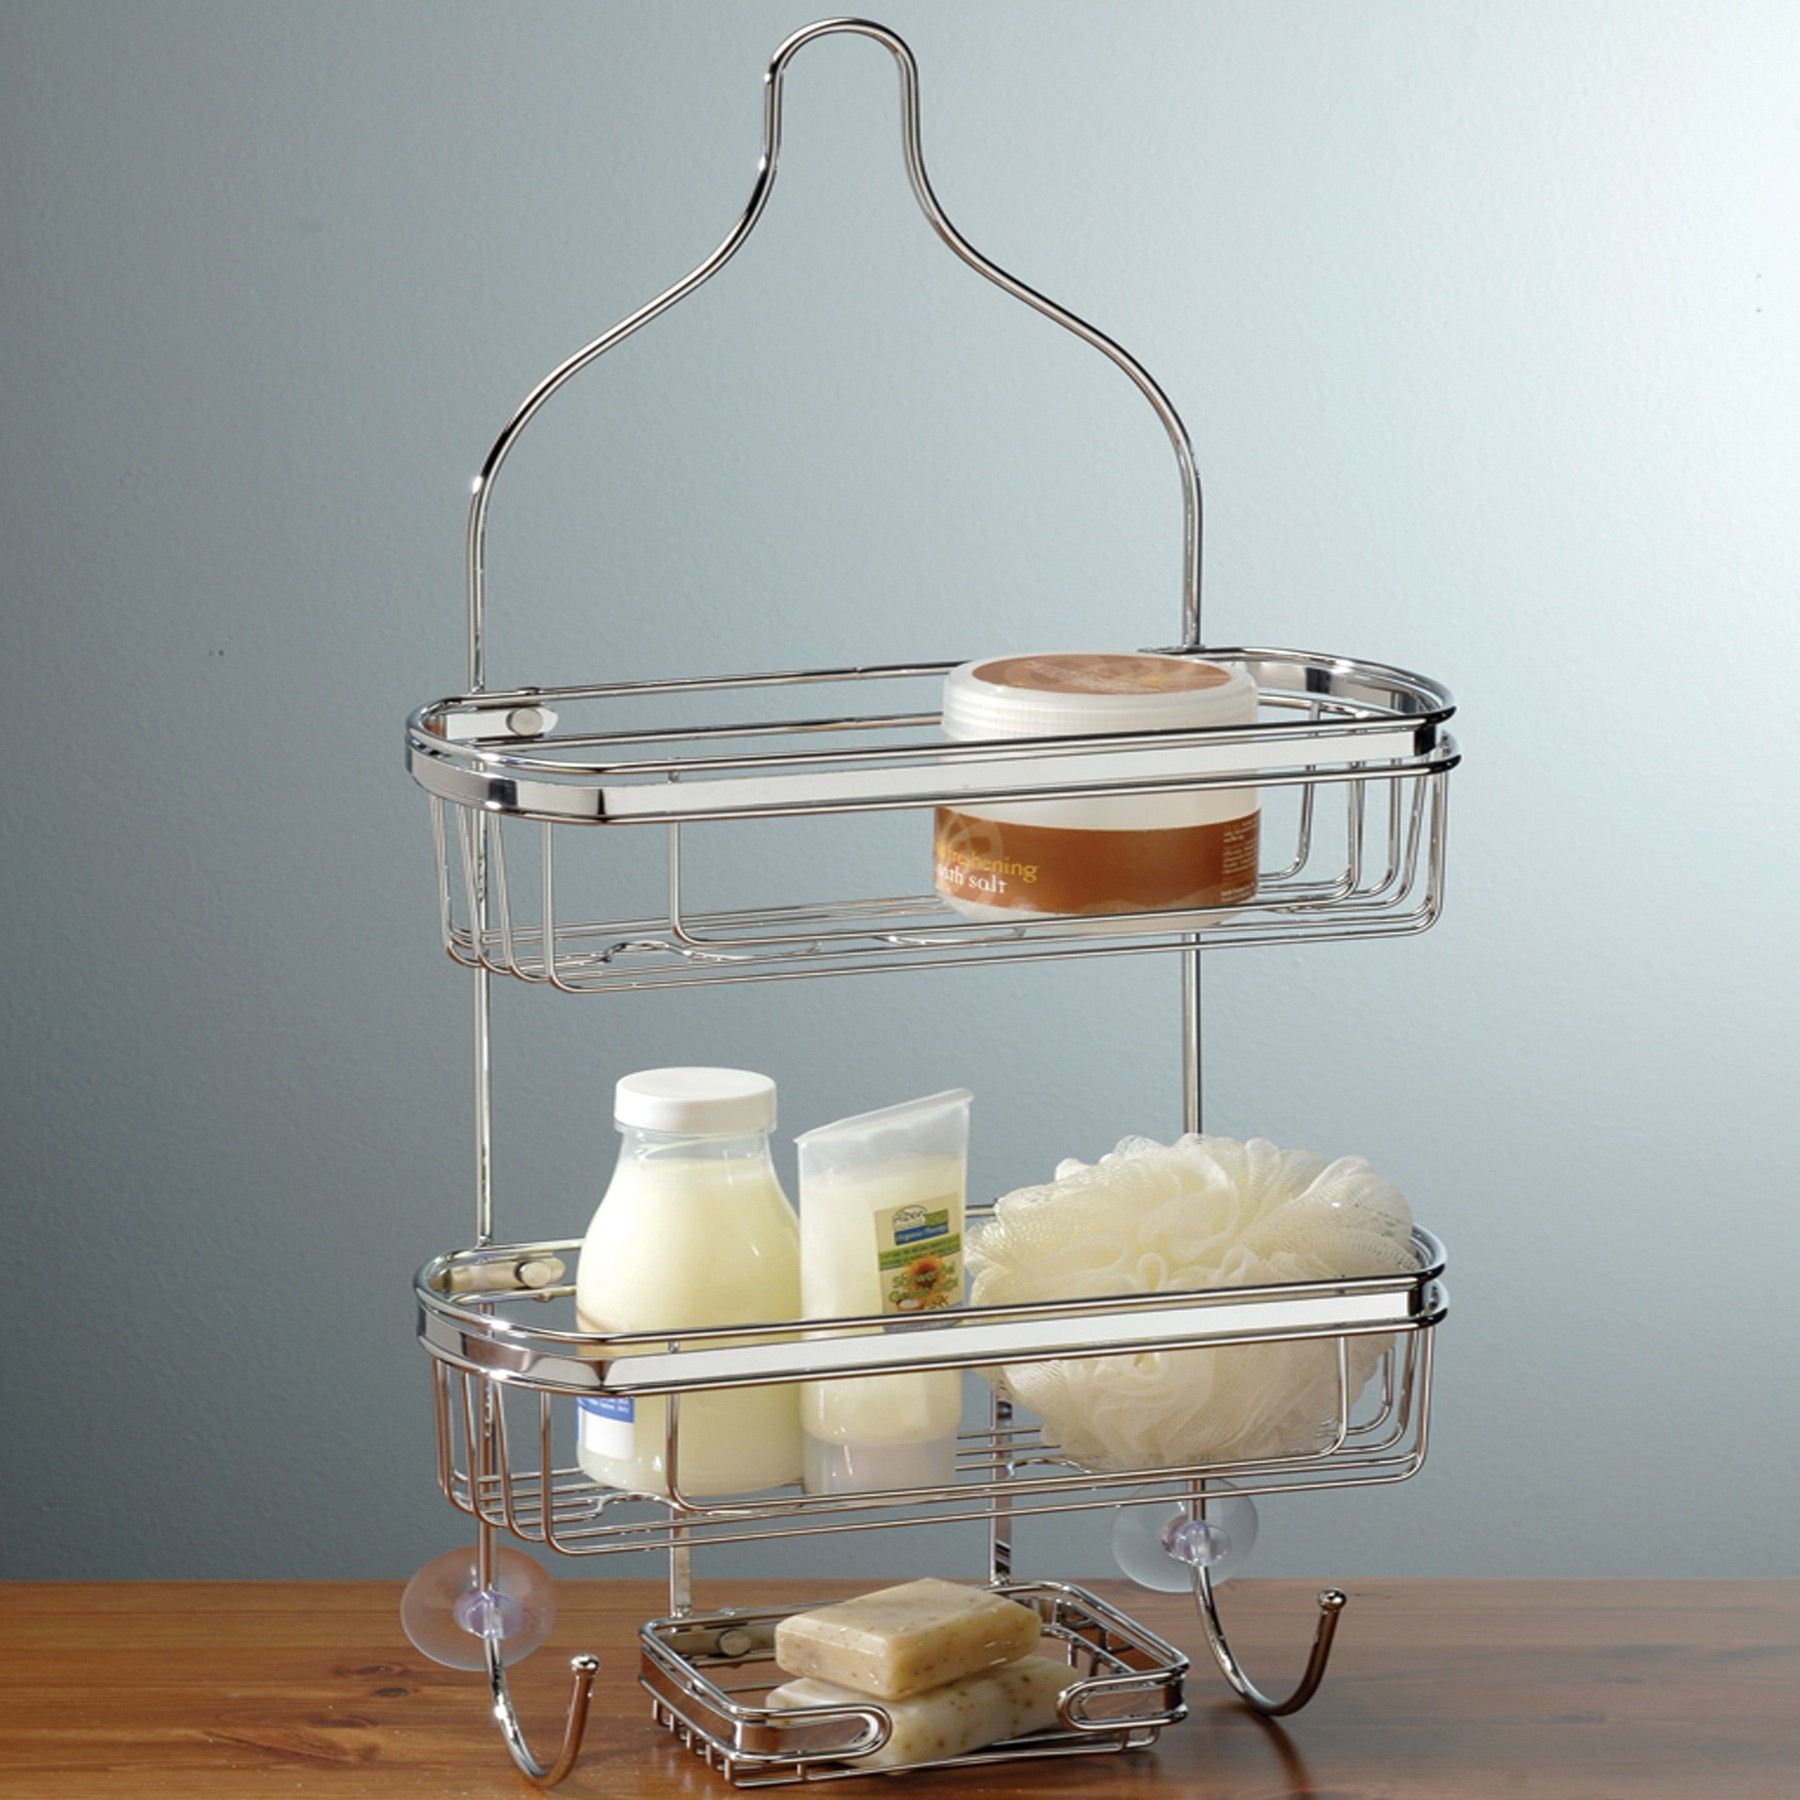 TWO TONE SHOWER CADDY - Chrome | Chrome, Bath accessories and Metals